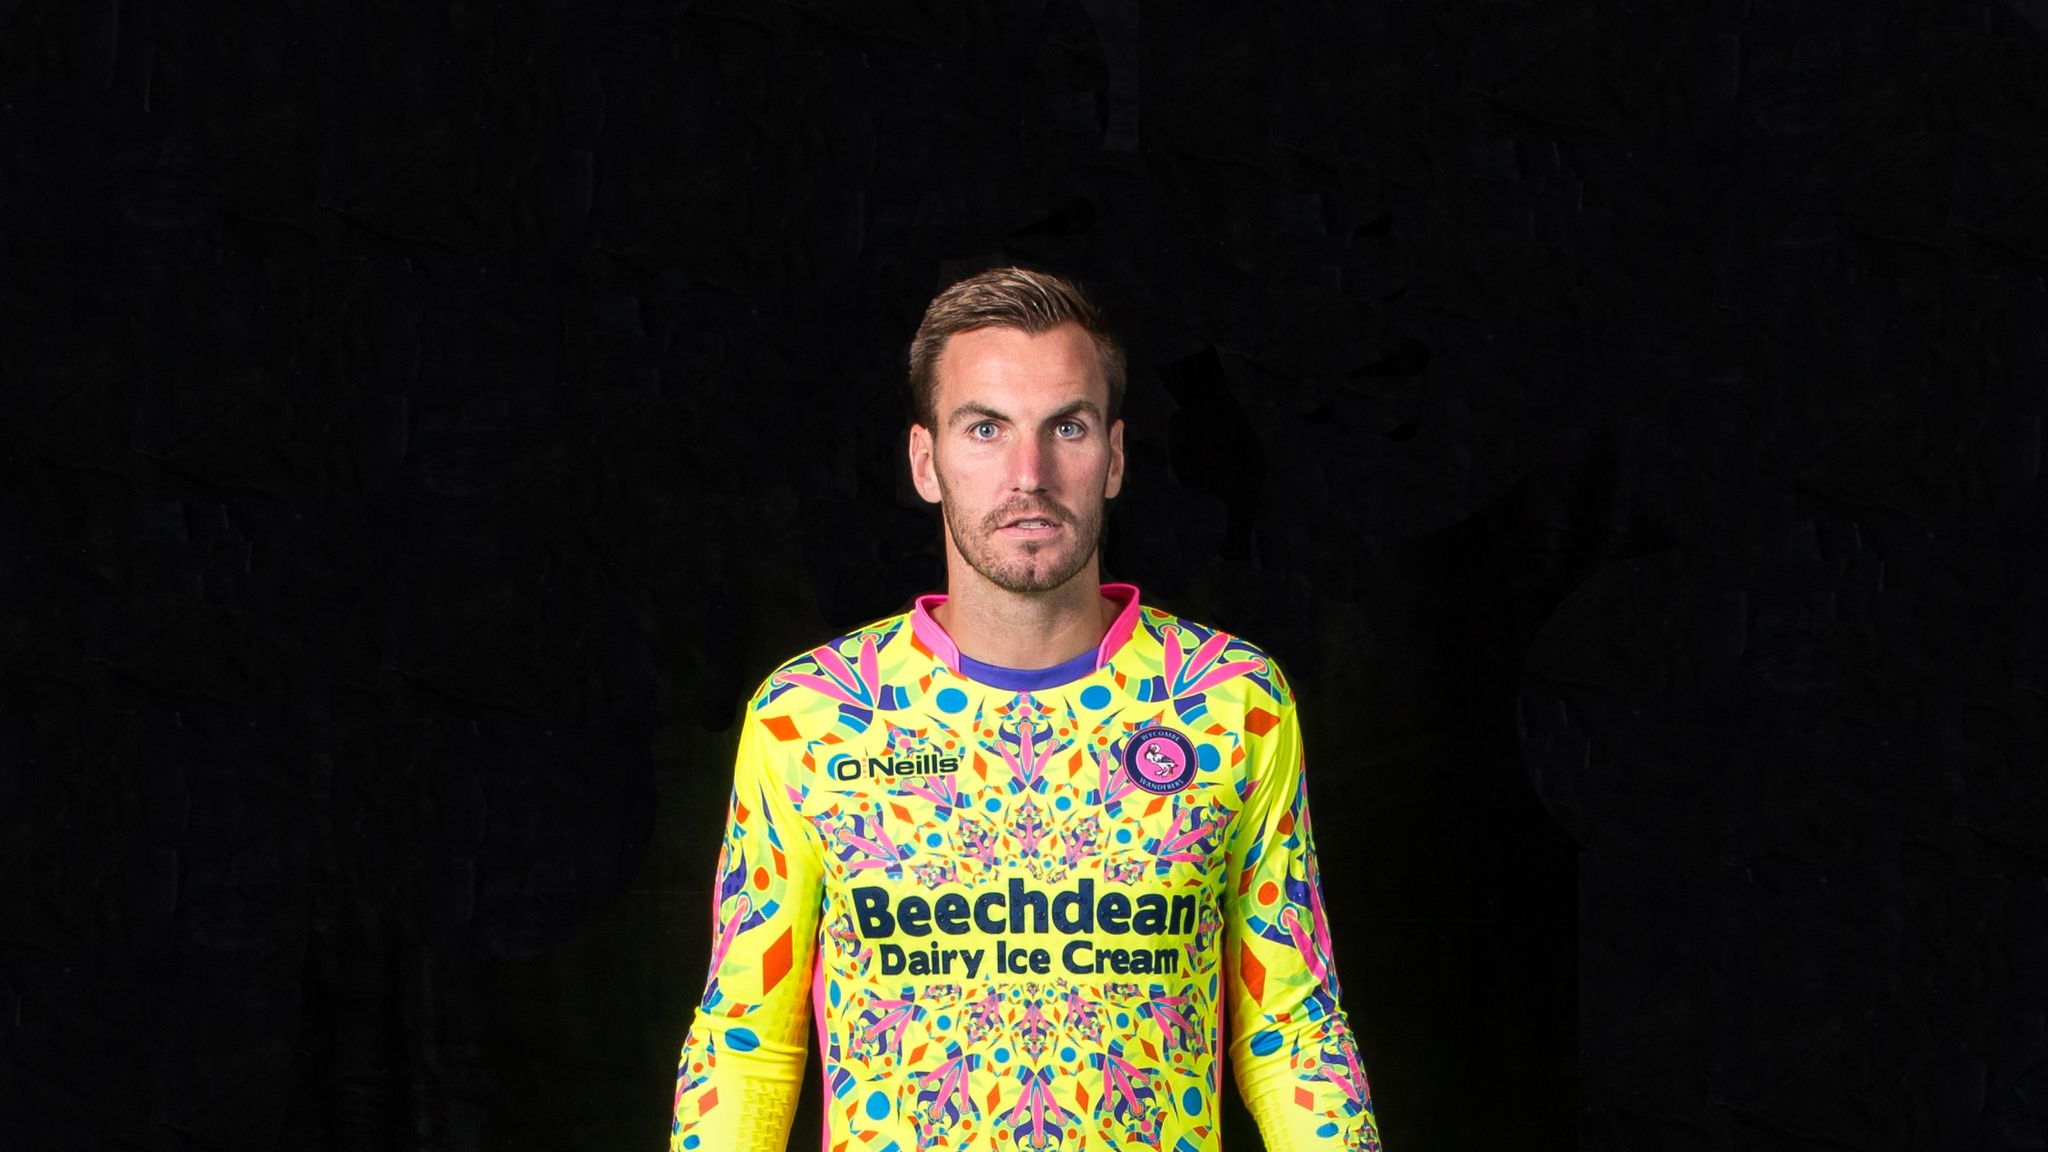 68302a0028f Wycombe Wanderers launch eye-catching goalkeeping kit with 'disruptive  magic-eye effect' | Football News | Sky Sports